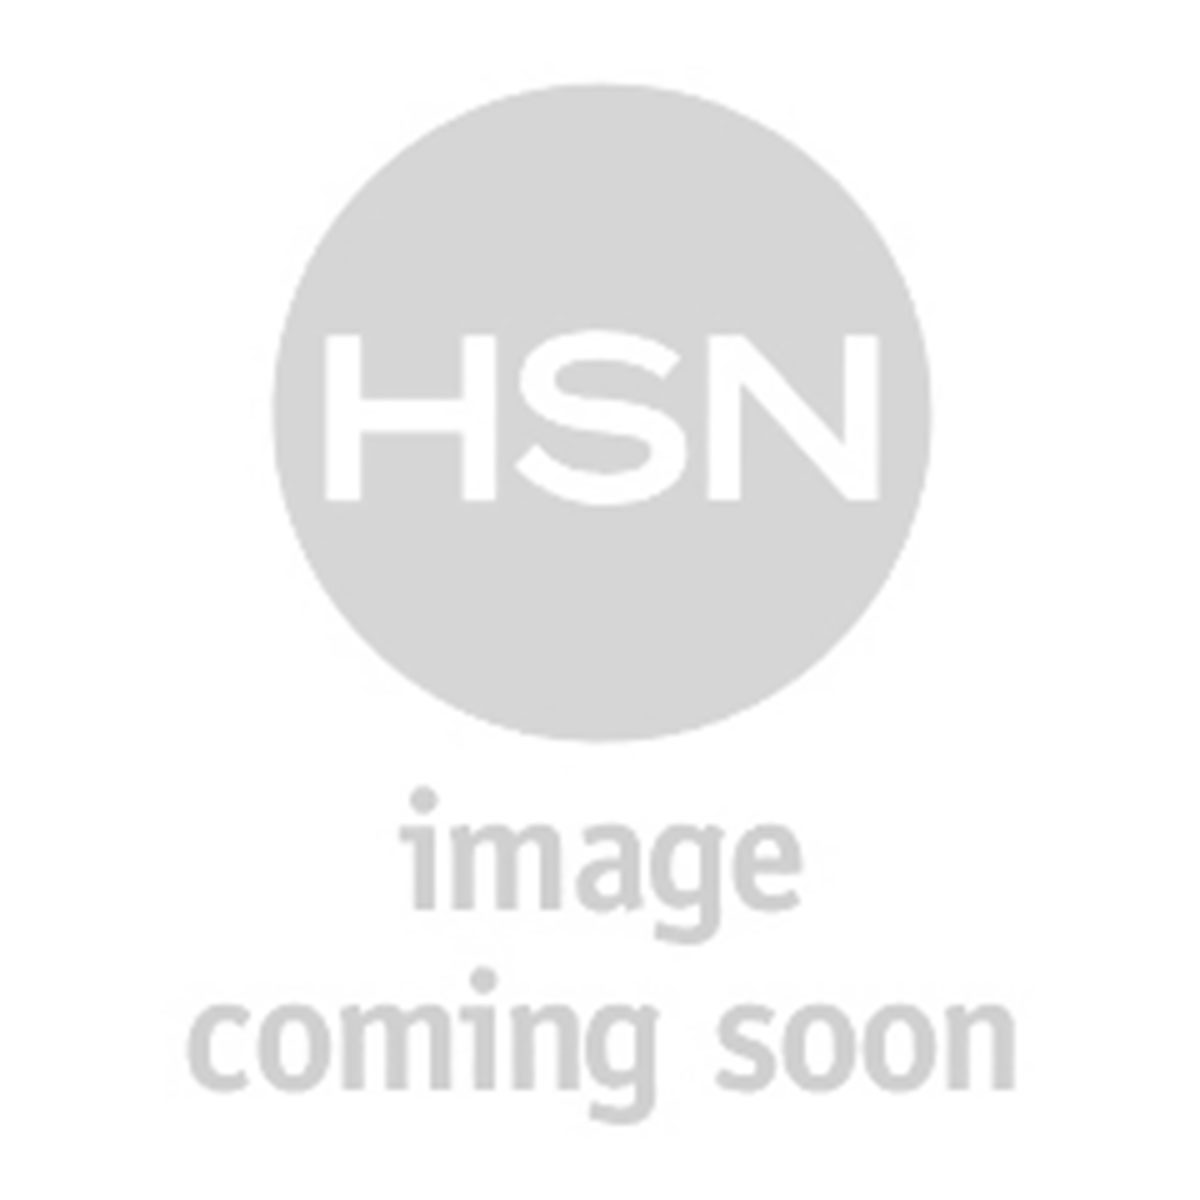 multi gym chair covers for hire cape town hsn exercise system with twister seat workout ball http www com products wtwister 10070140 query 440 604 issuggested false